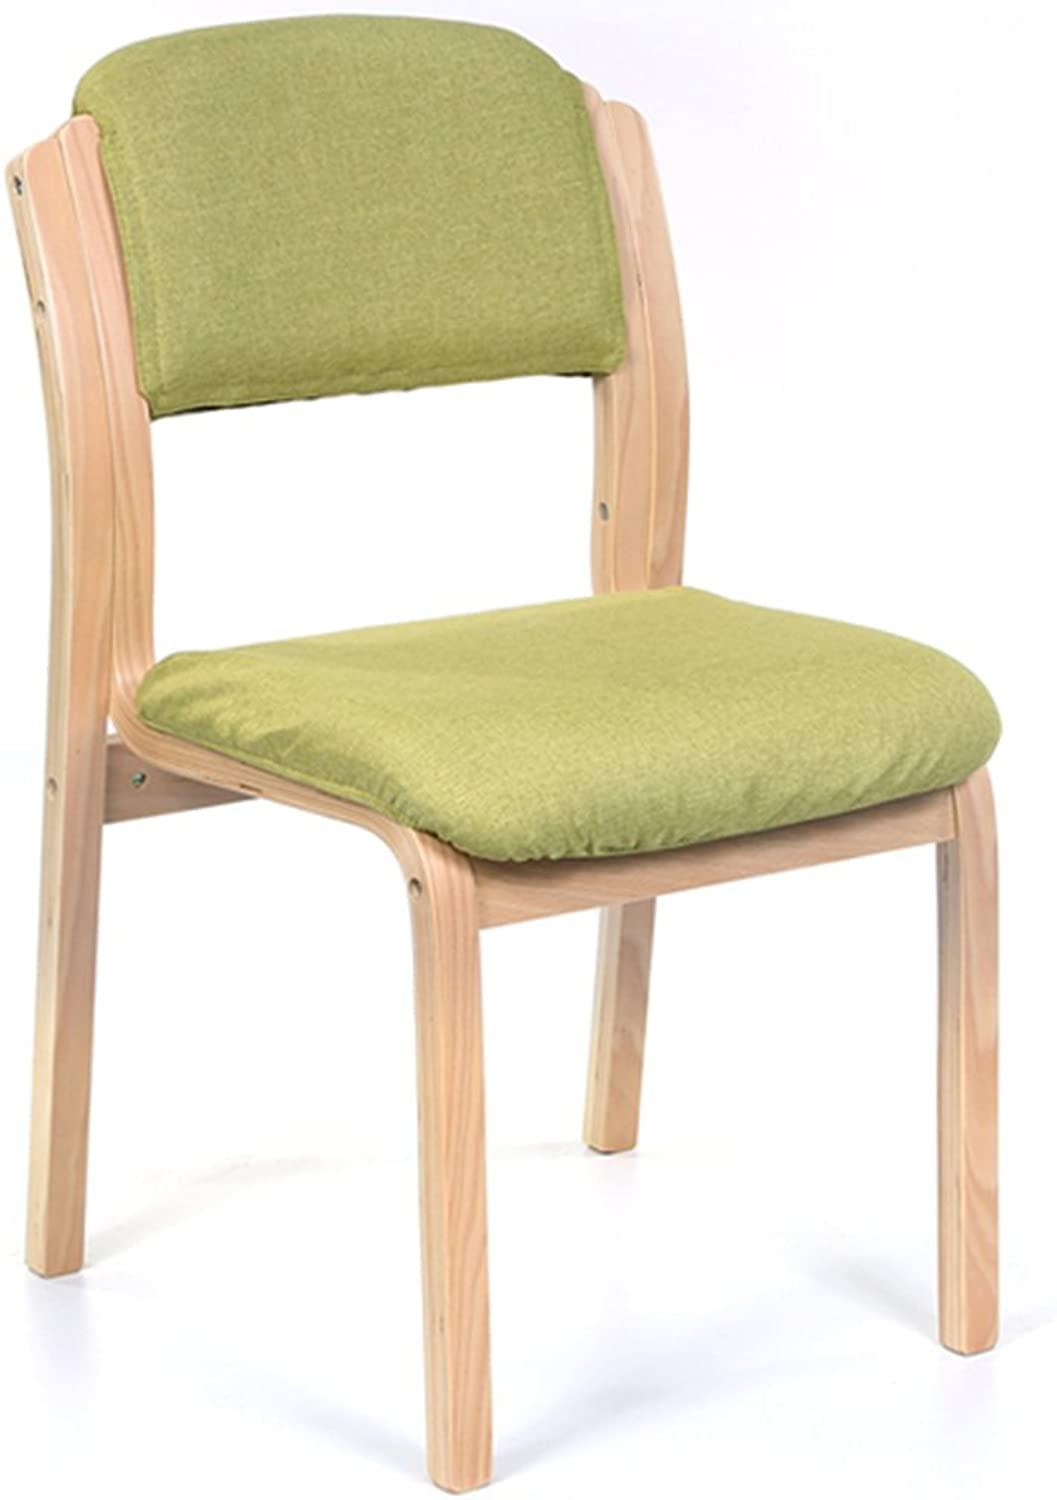 Chair, Household Cloth Cafe Dining chair Simple Hotels Chair Backrest European Wooden chair ( color    2 )